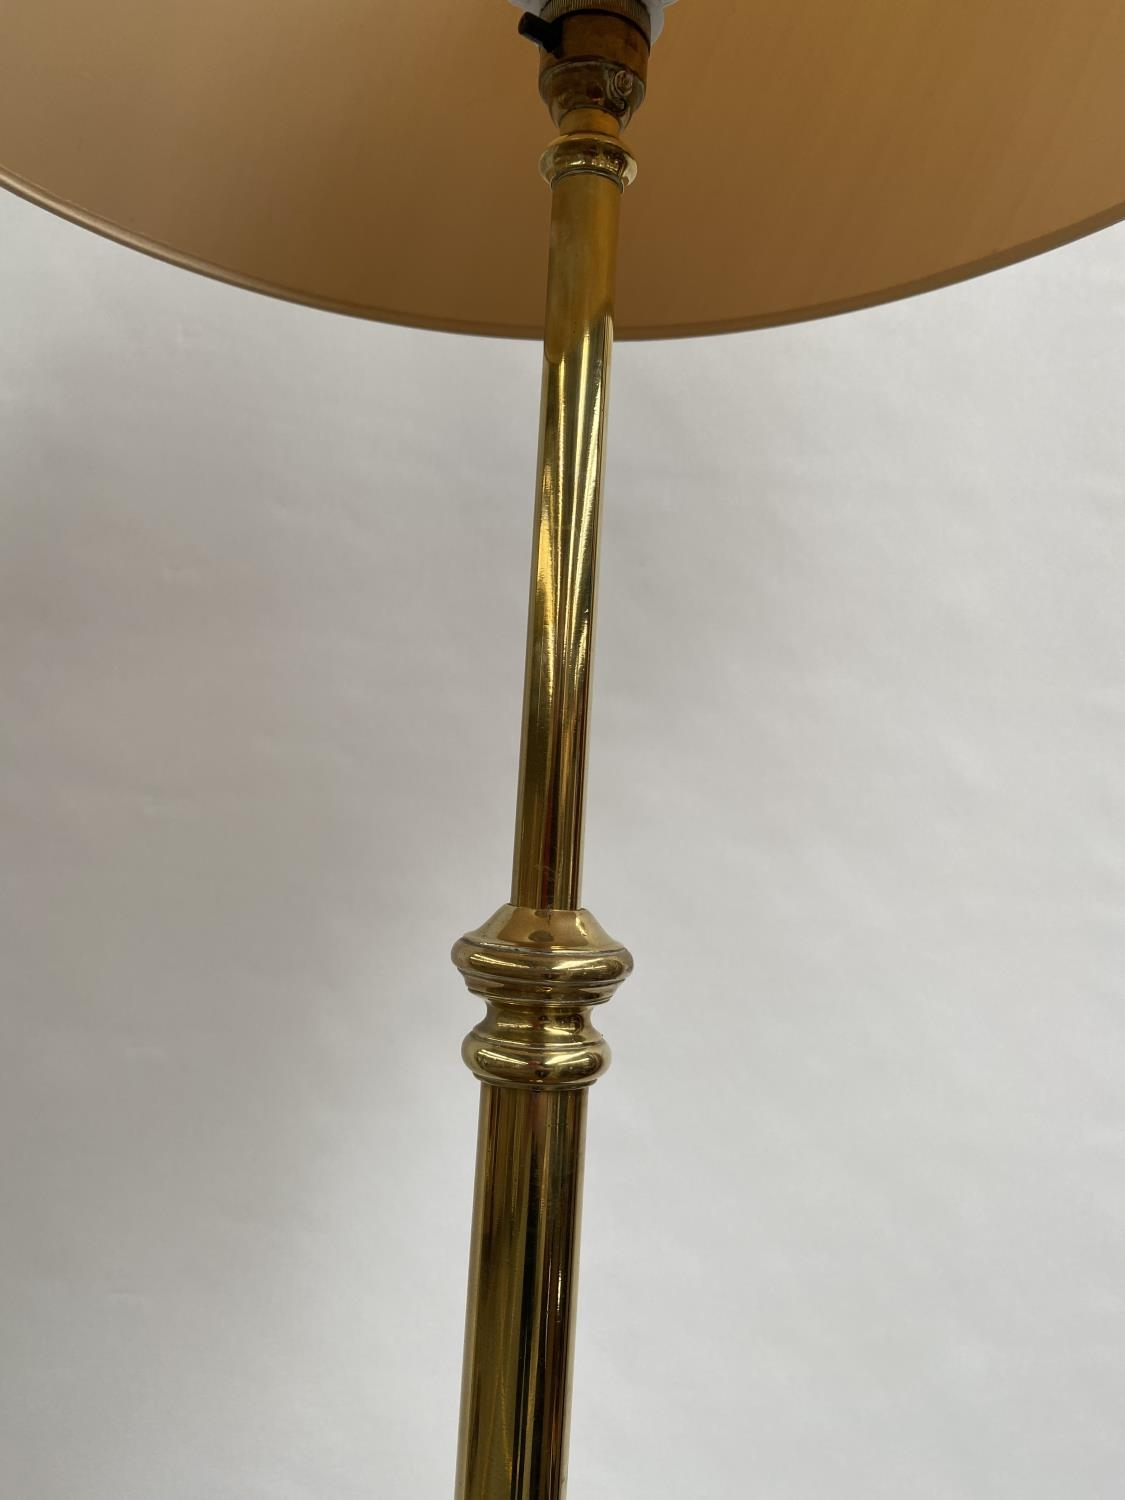 Antique heavy gilt brass rise and fall standard lamp. [height 173cm] [220cm] - Image 4 of 4